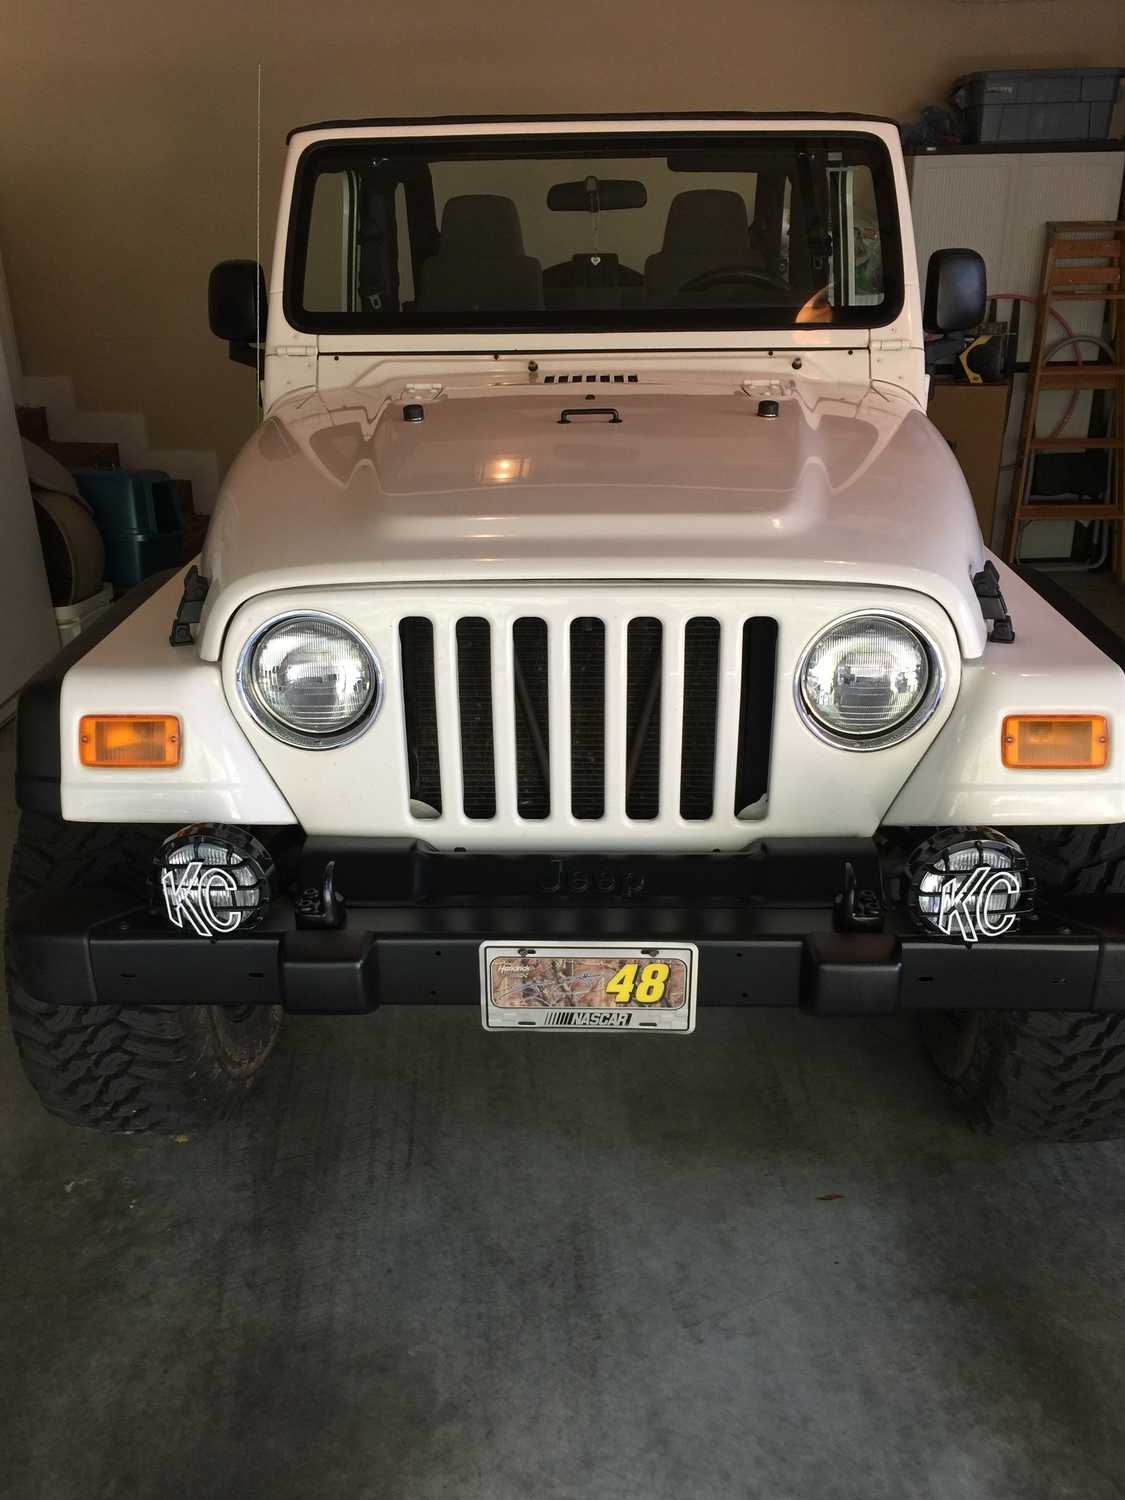 Jeep Wrangler Fog Light Bulb Replacement